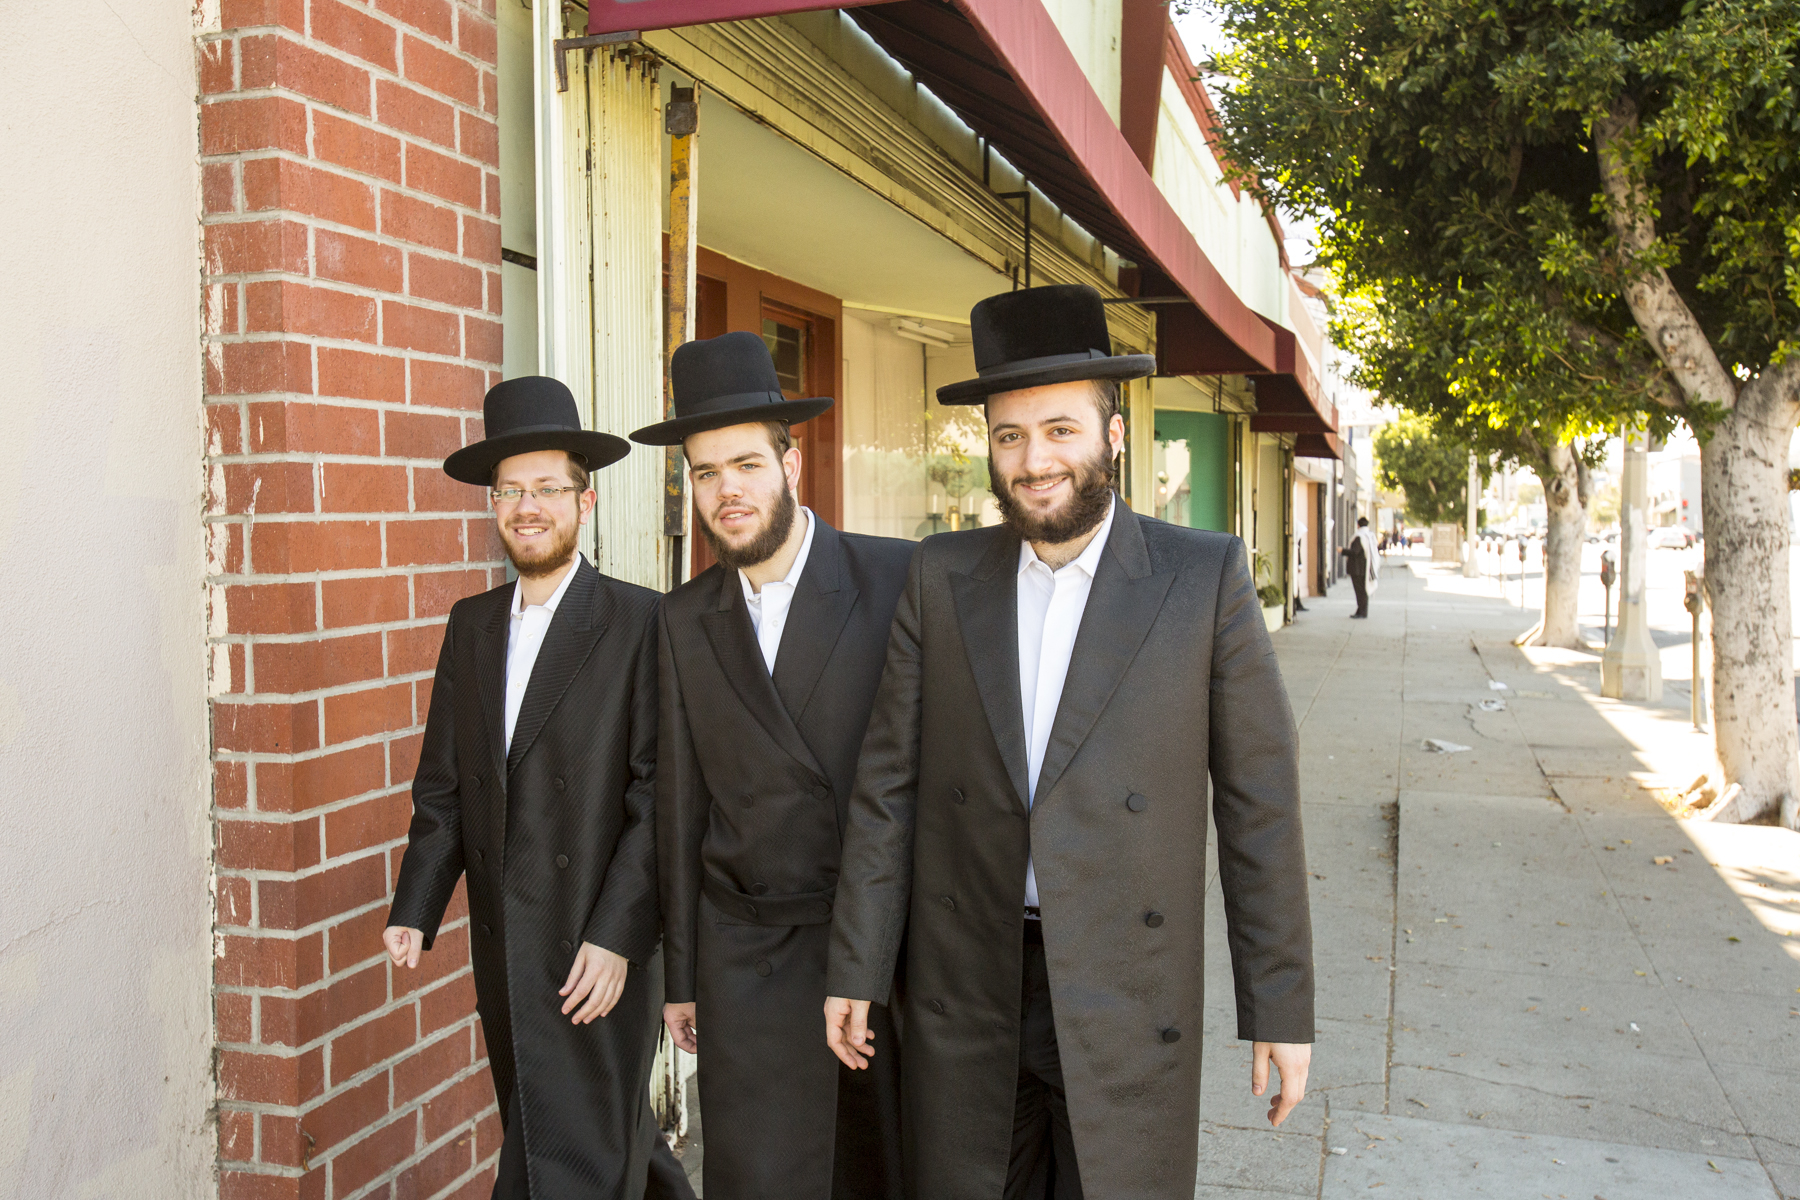 westwood jewish single men Browse profiles & photos of gay single men in  west hollywood, west los angeles, westwood (los angeles co  jewish men.